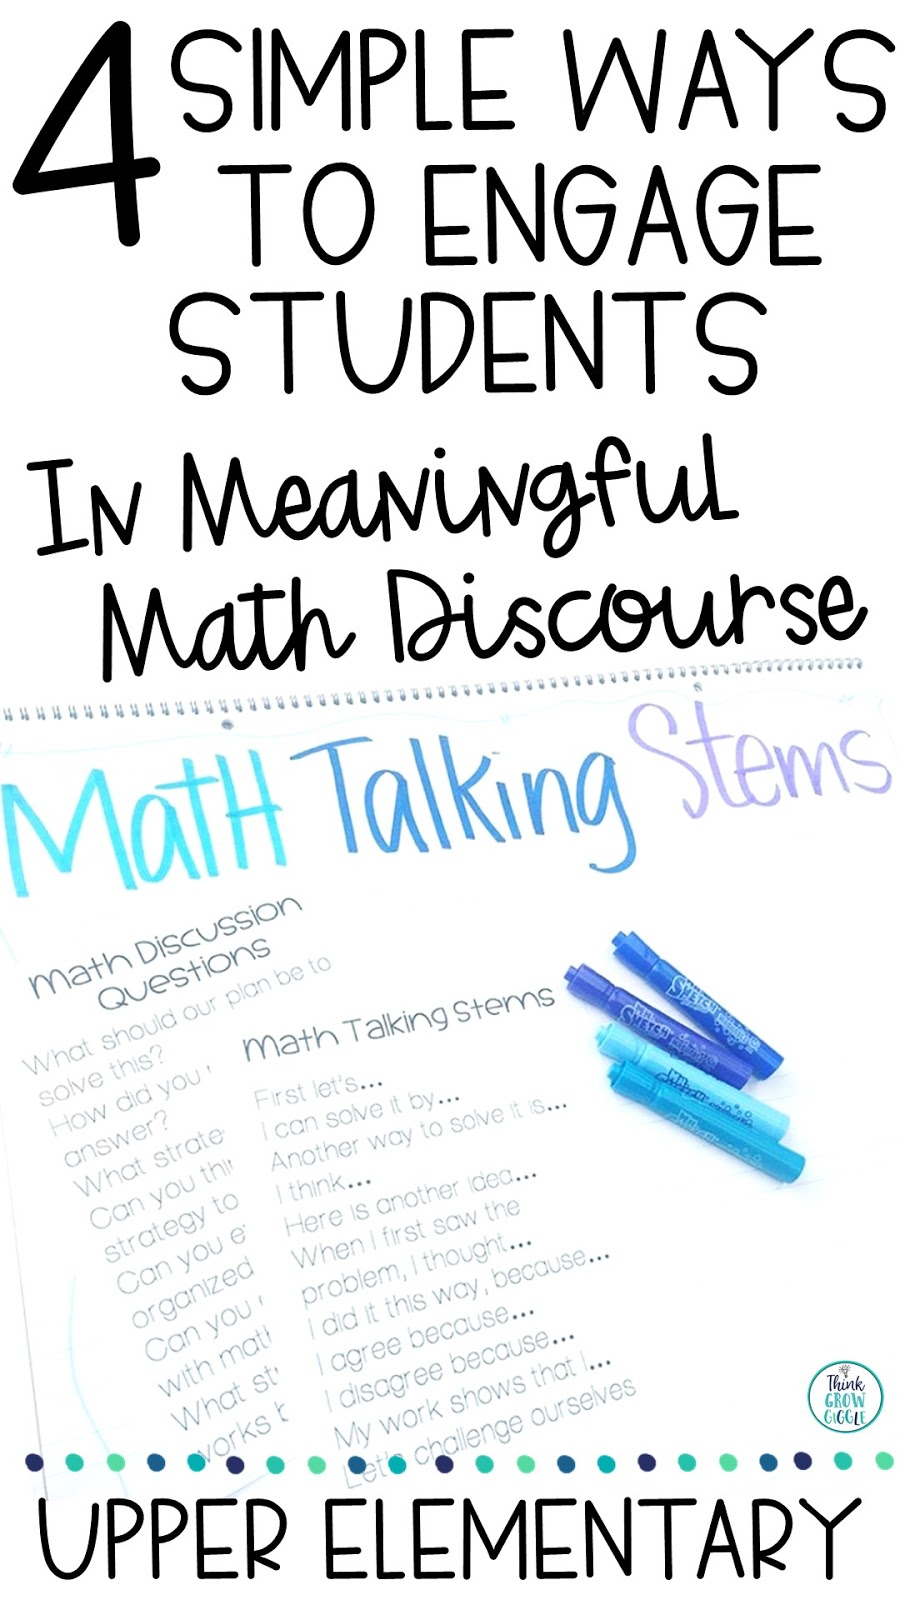 small resolution of 4 Simple Ways to Engage Students in Meaningful Mathematical Discourse -  Think Grow Giggle